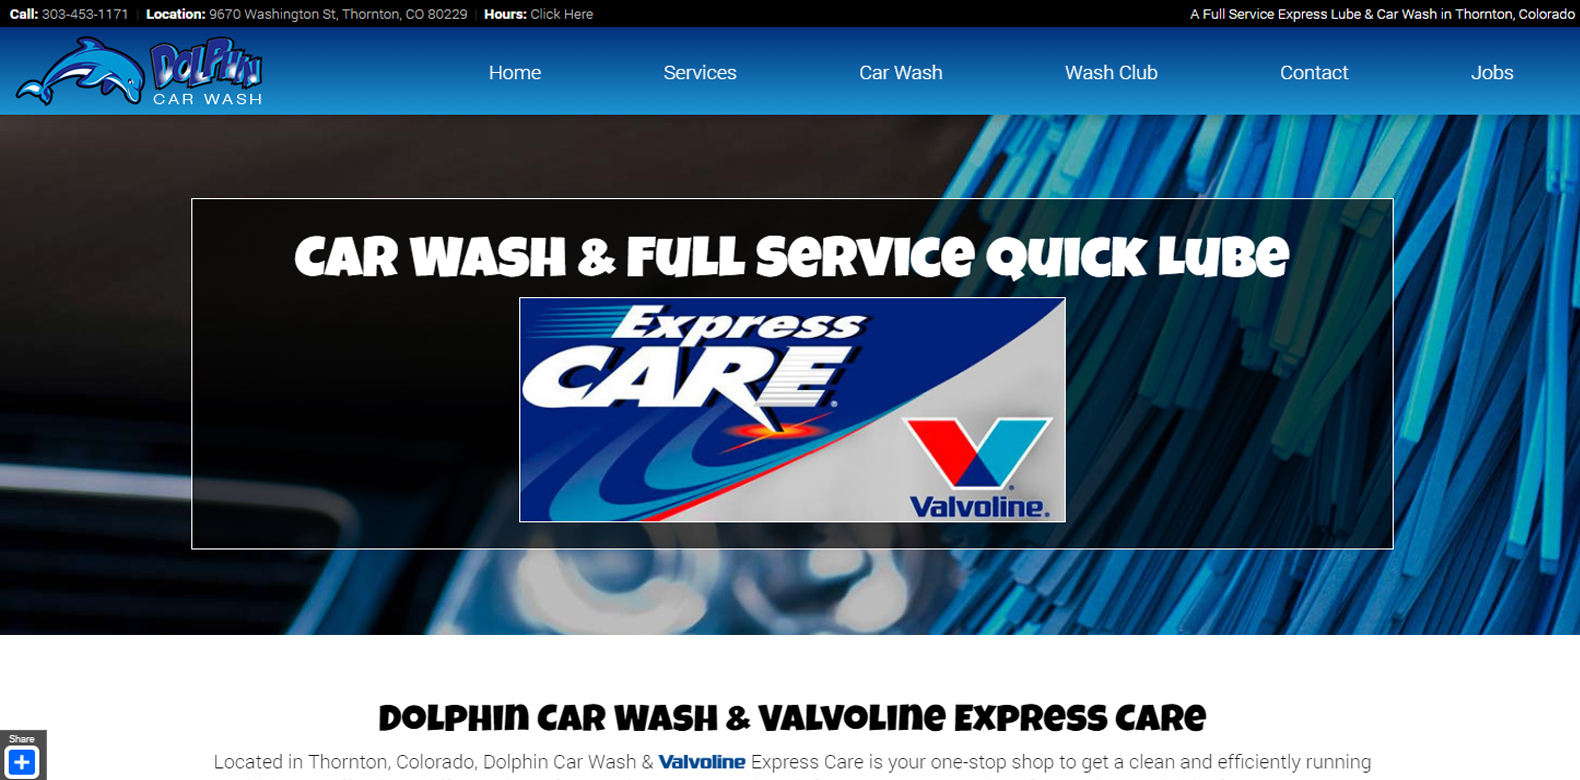 New Website Launched: Dolphin Car Care